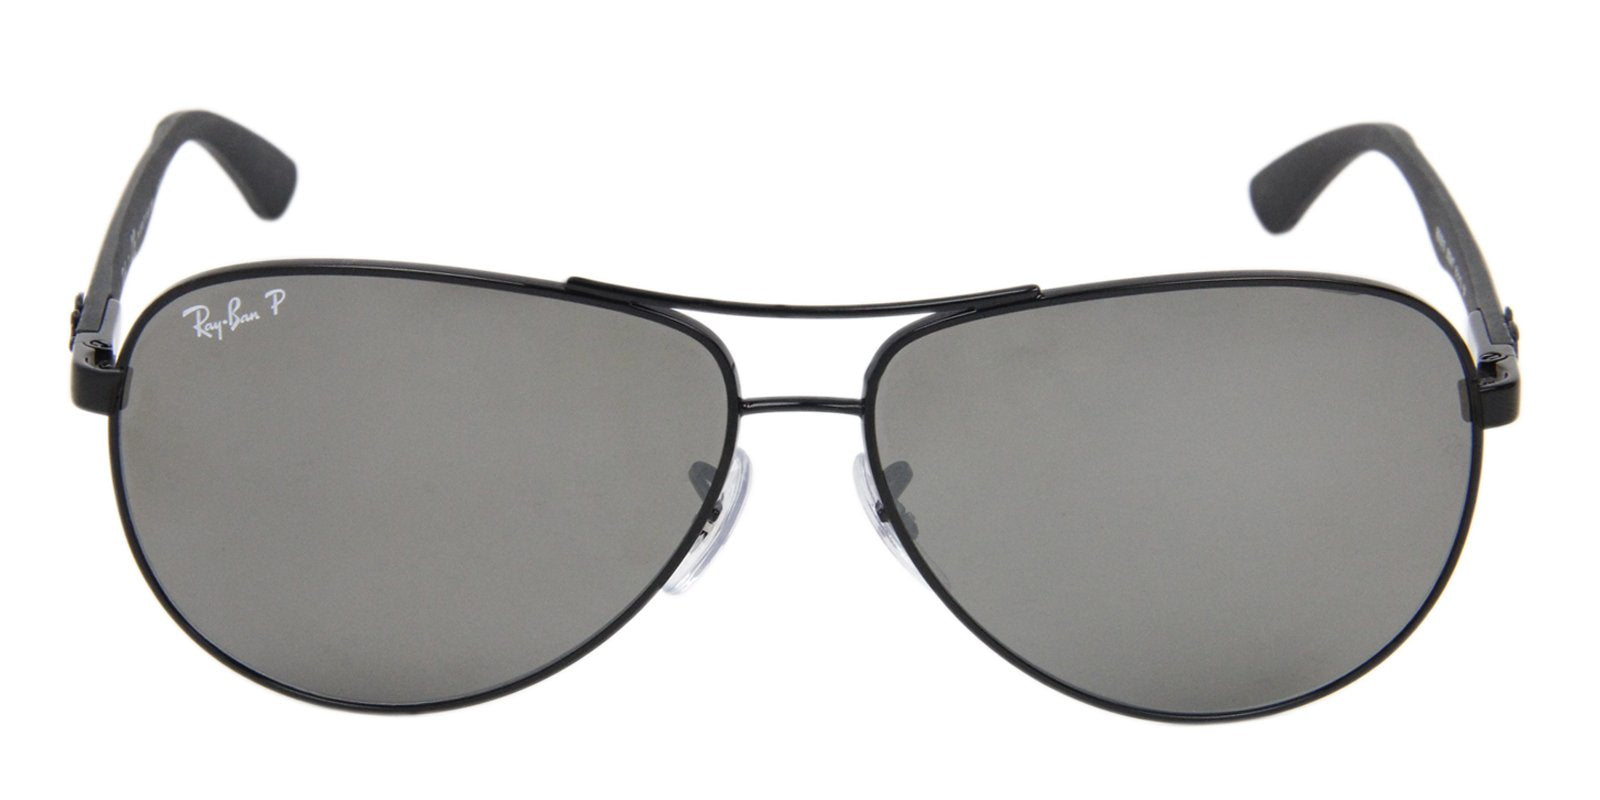 mens black aviator sunglasses ray ban